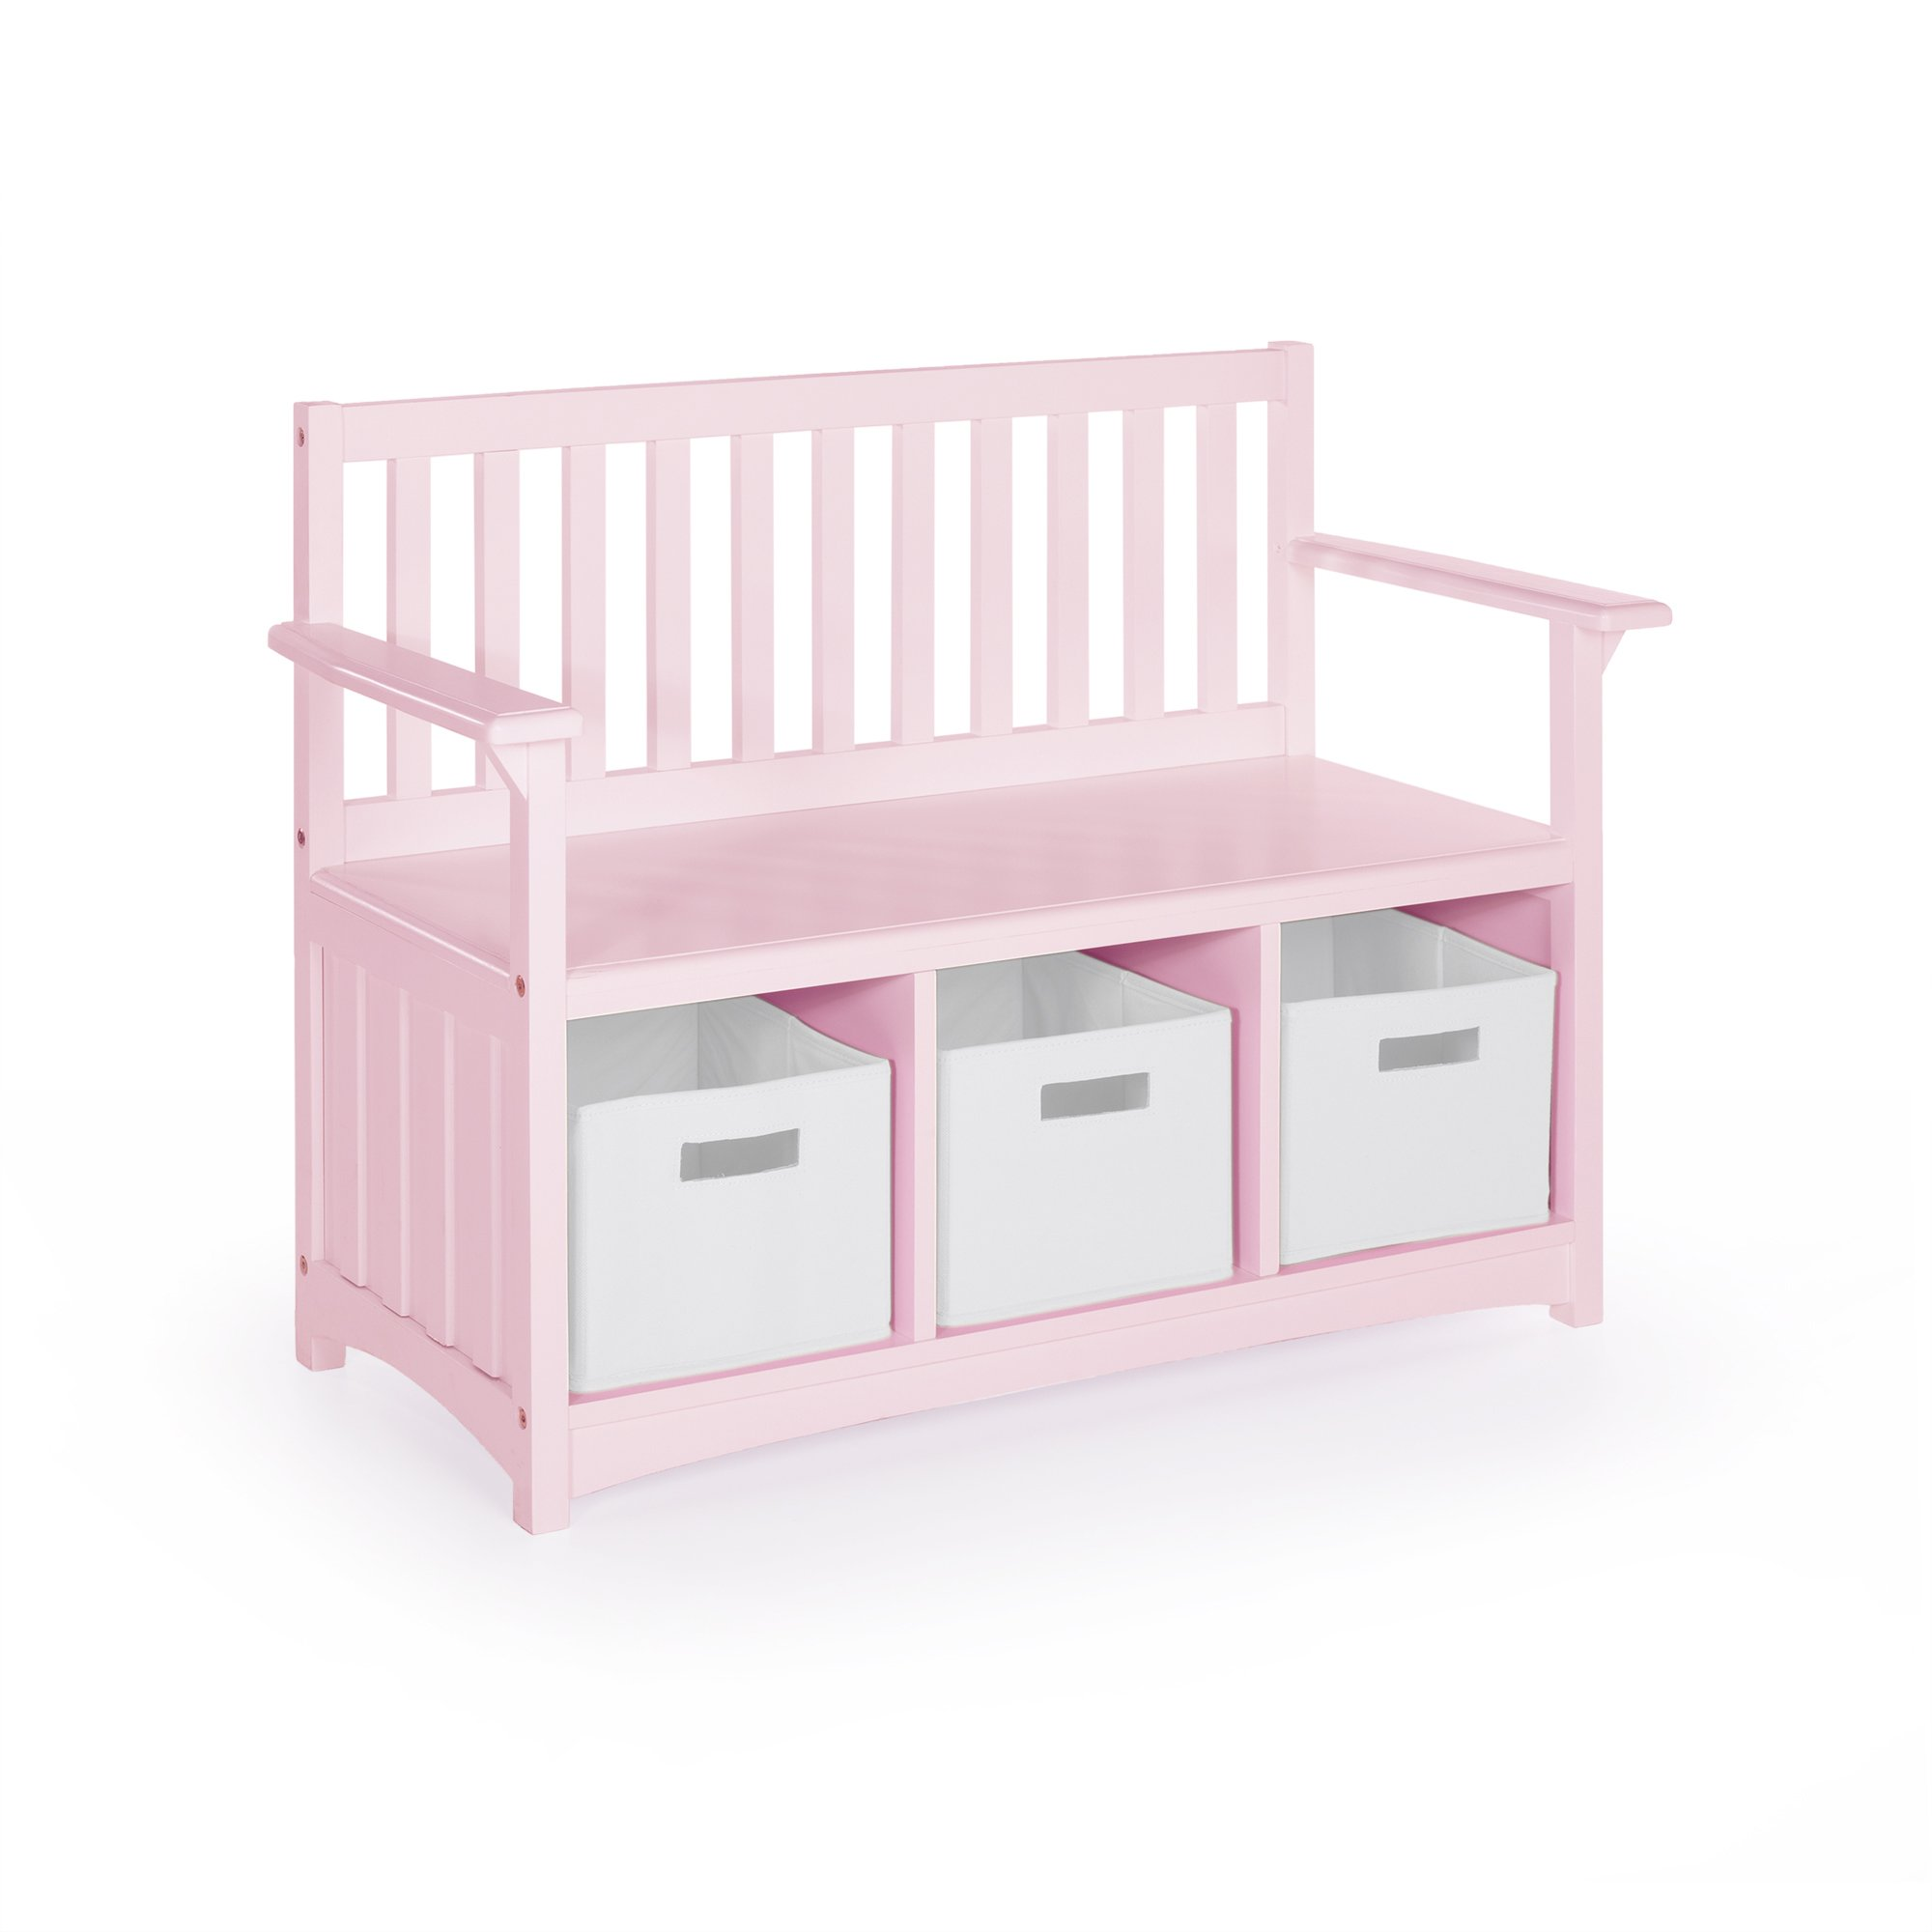 Guidecraft Classic Storage Bench with Bins - Pink: Bins Storage Cubby, Kids Toys Organizer, School Educational Supply Furniture